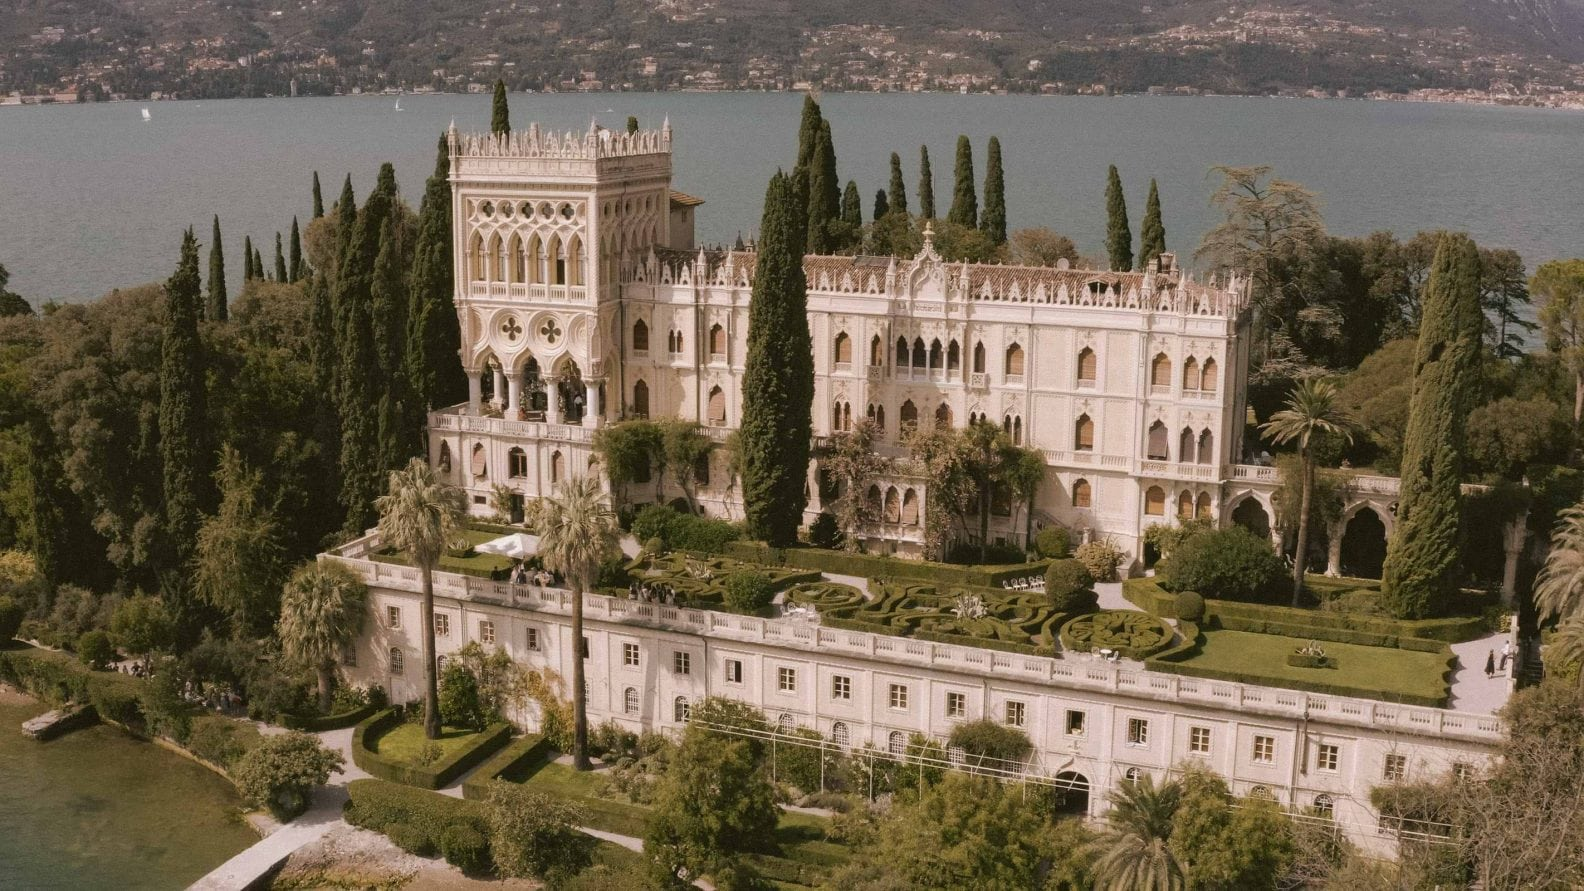 an amazing drone view on Isola del garda